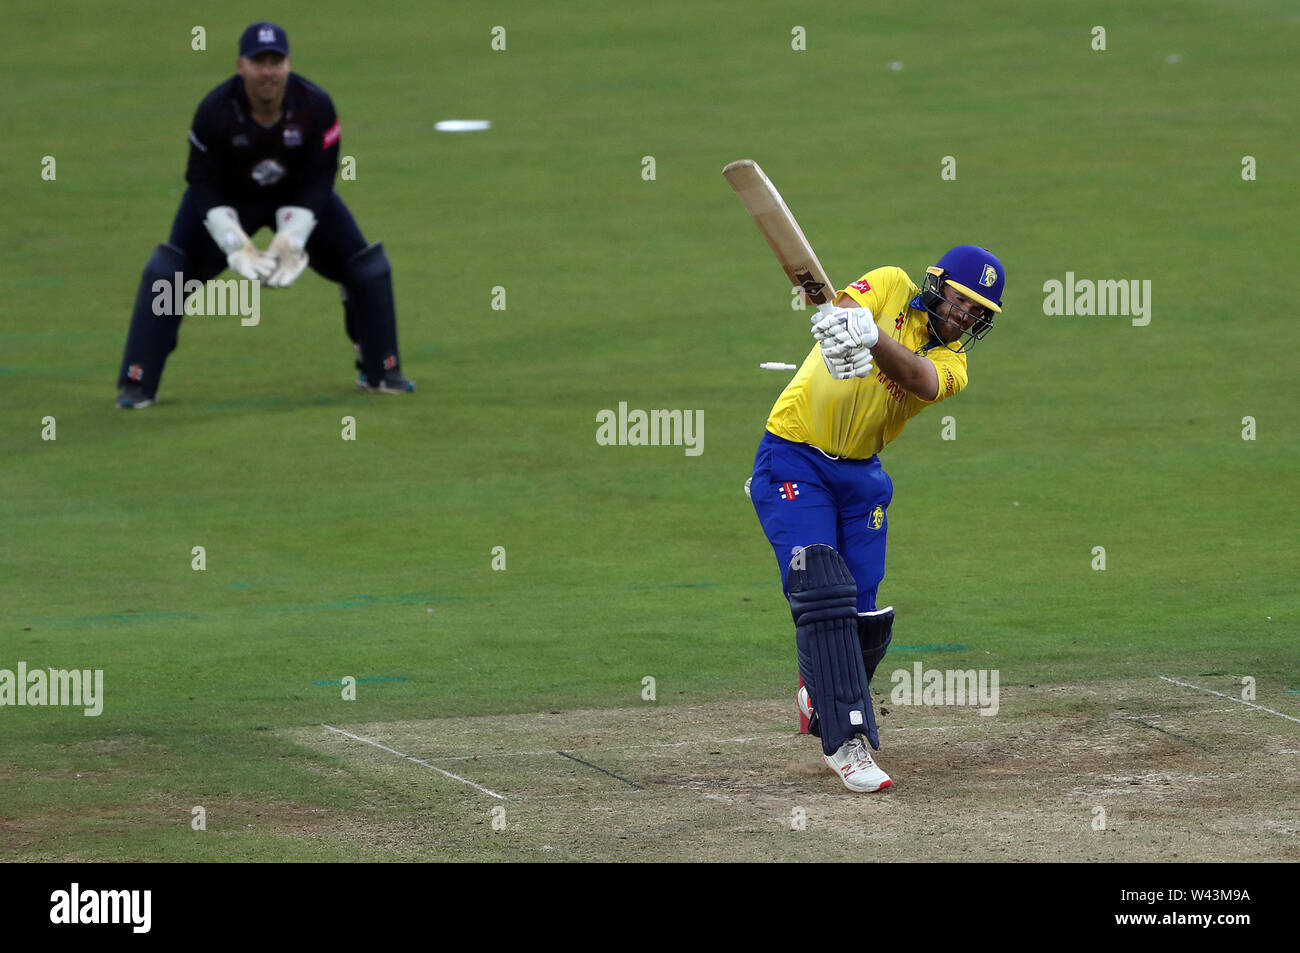 Durham's Graham Clark is bowled by Northamptonshire's Faheem Ashraf during the Vitality Blast T20 match at Emirates Riverside, Durham. - Stock Image